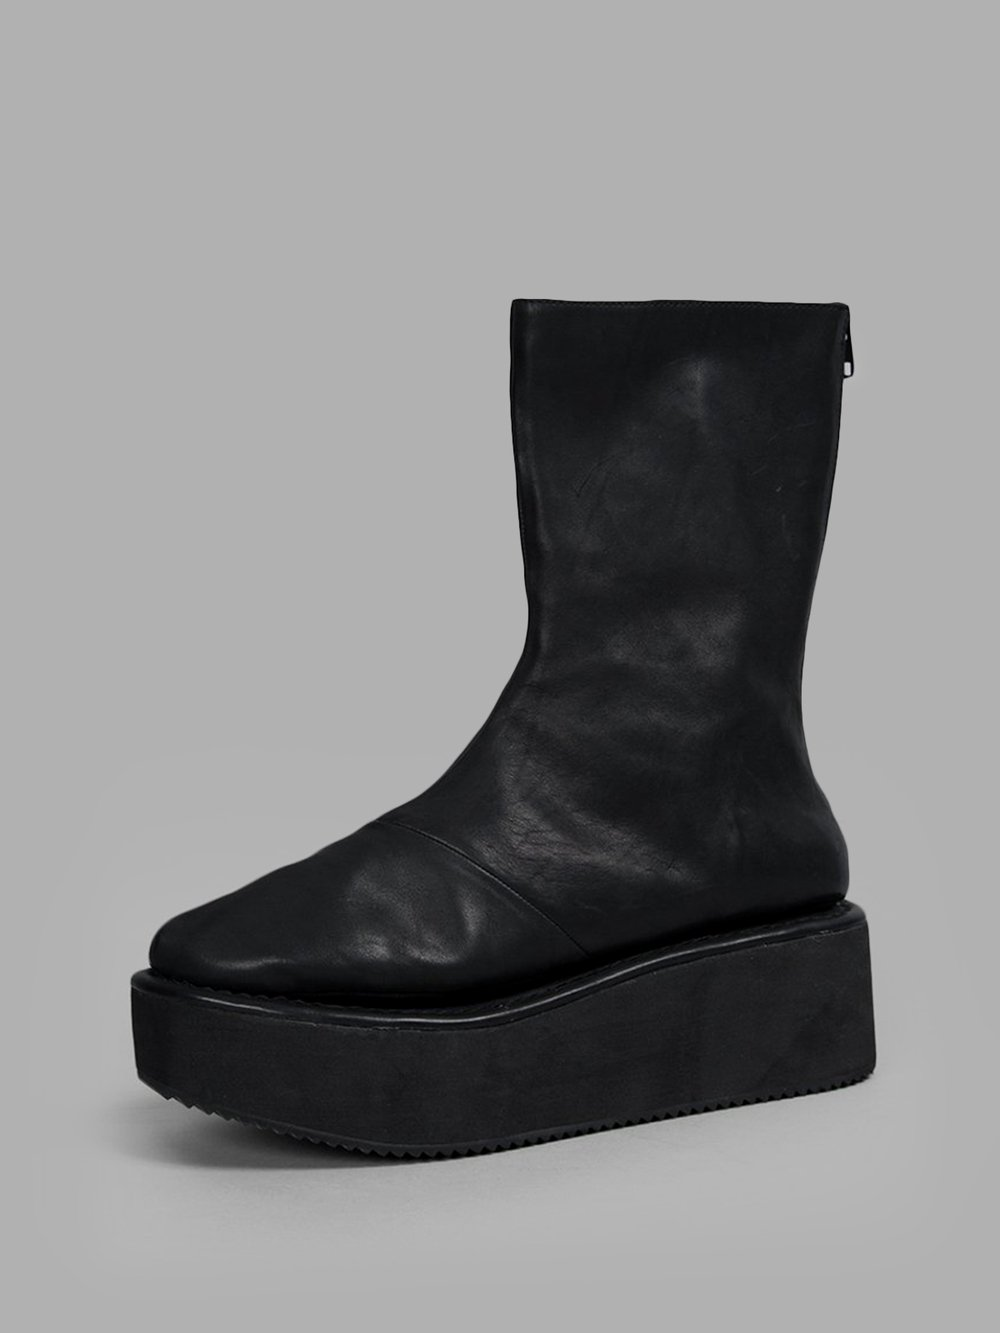 Image of CEDRIC JACQUEMYN BOOTS